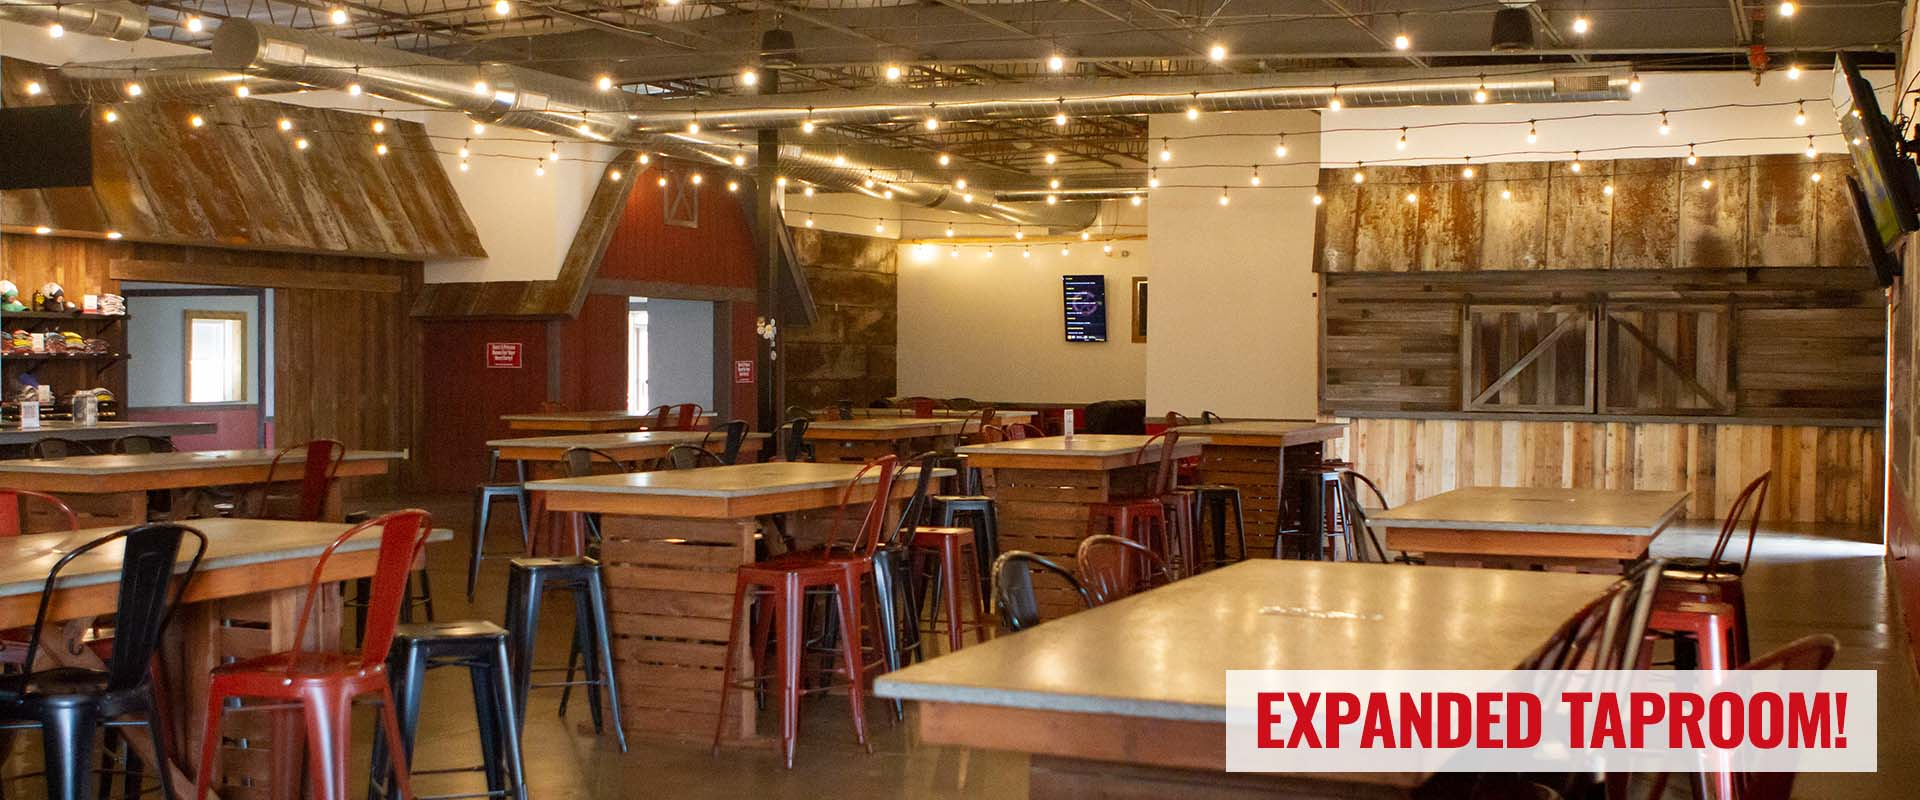 Expanded Taproom Slide